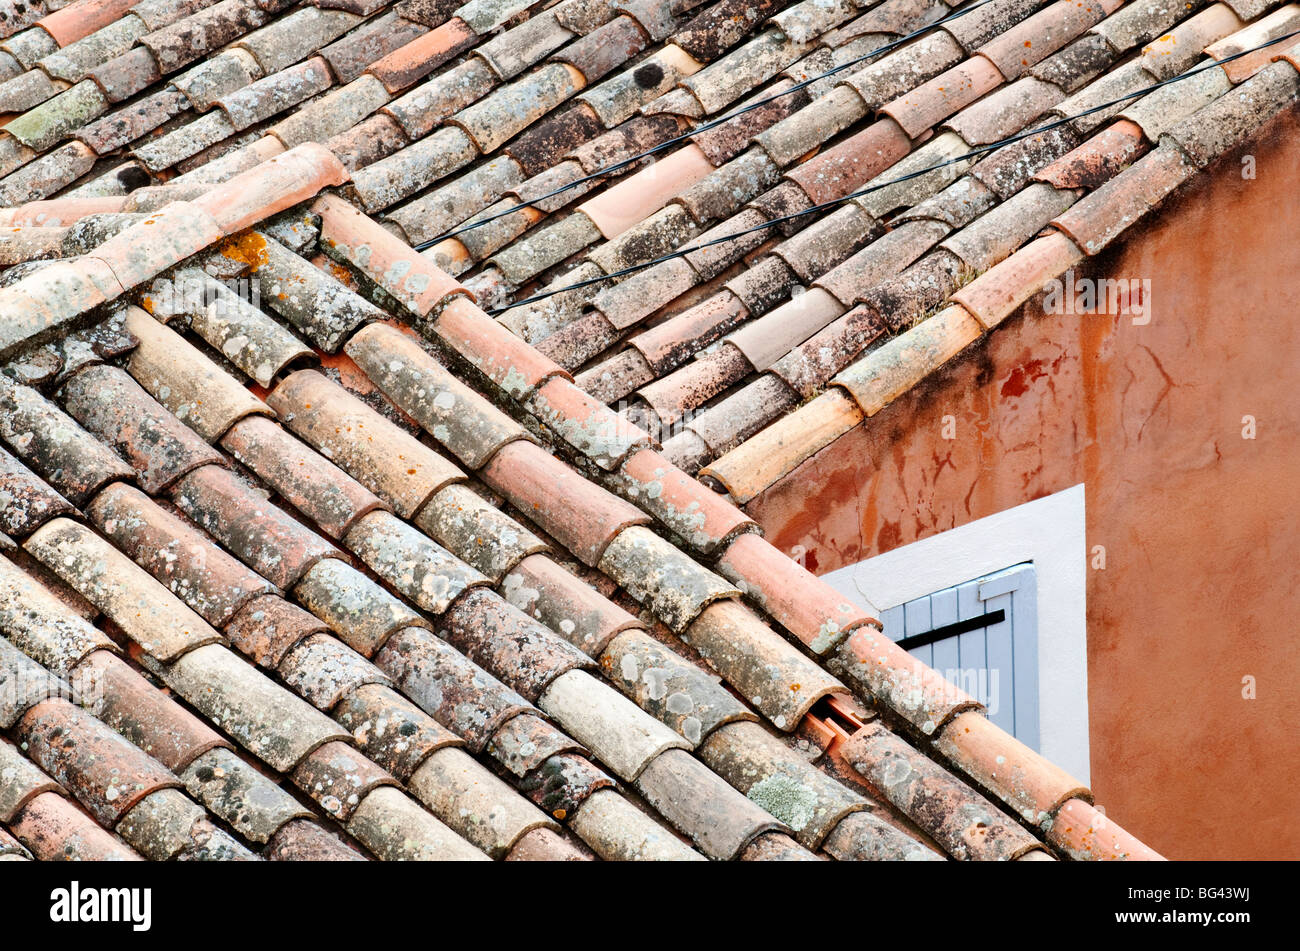 Roofs of Roussillon, Provence, France - Stock Image